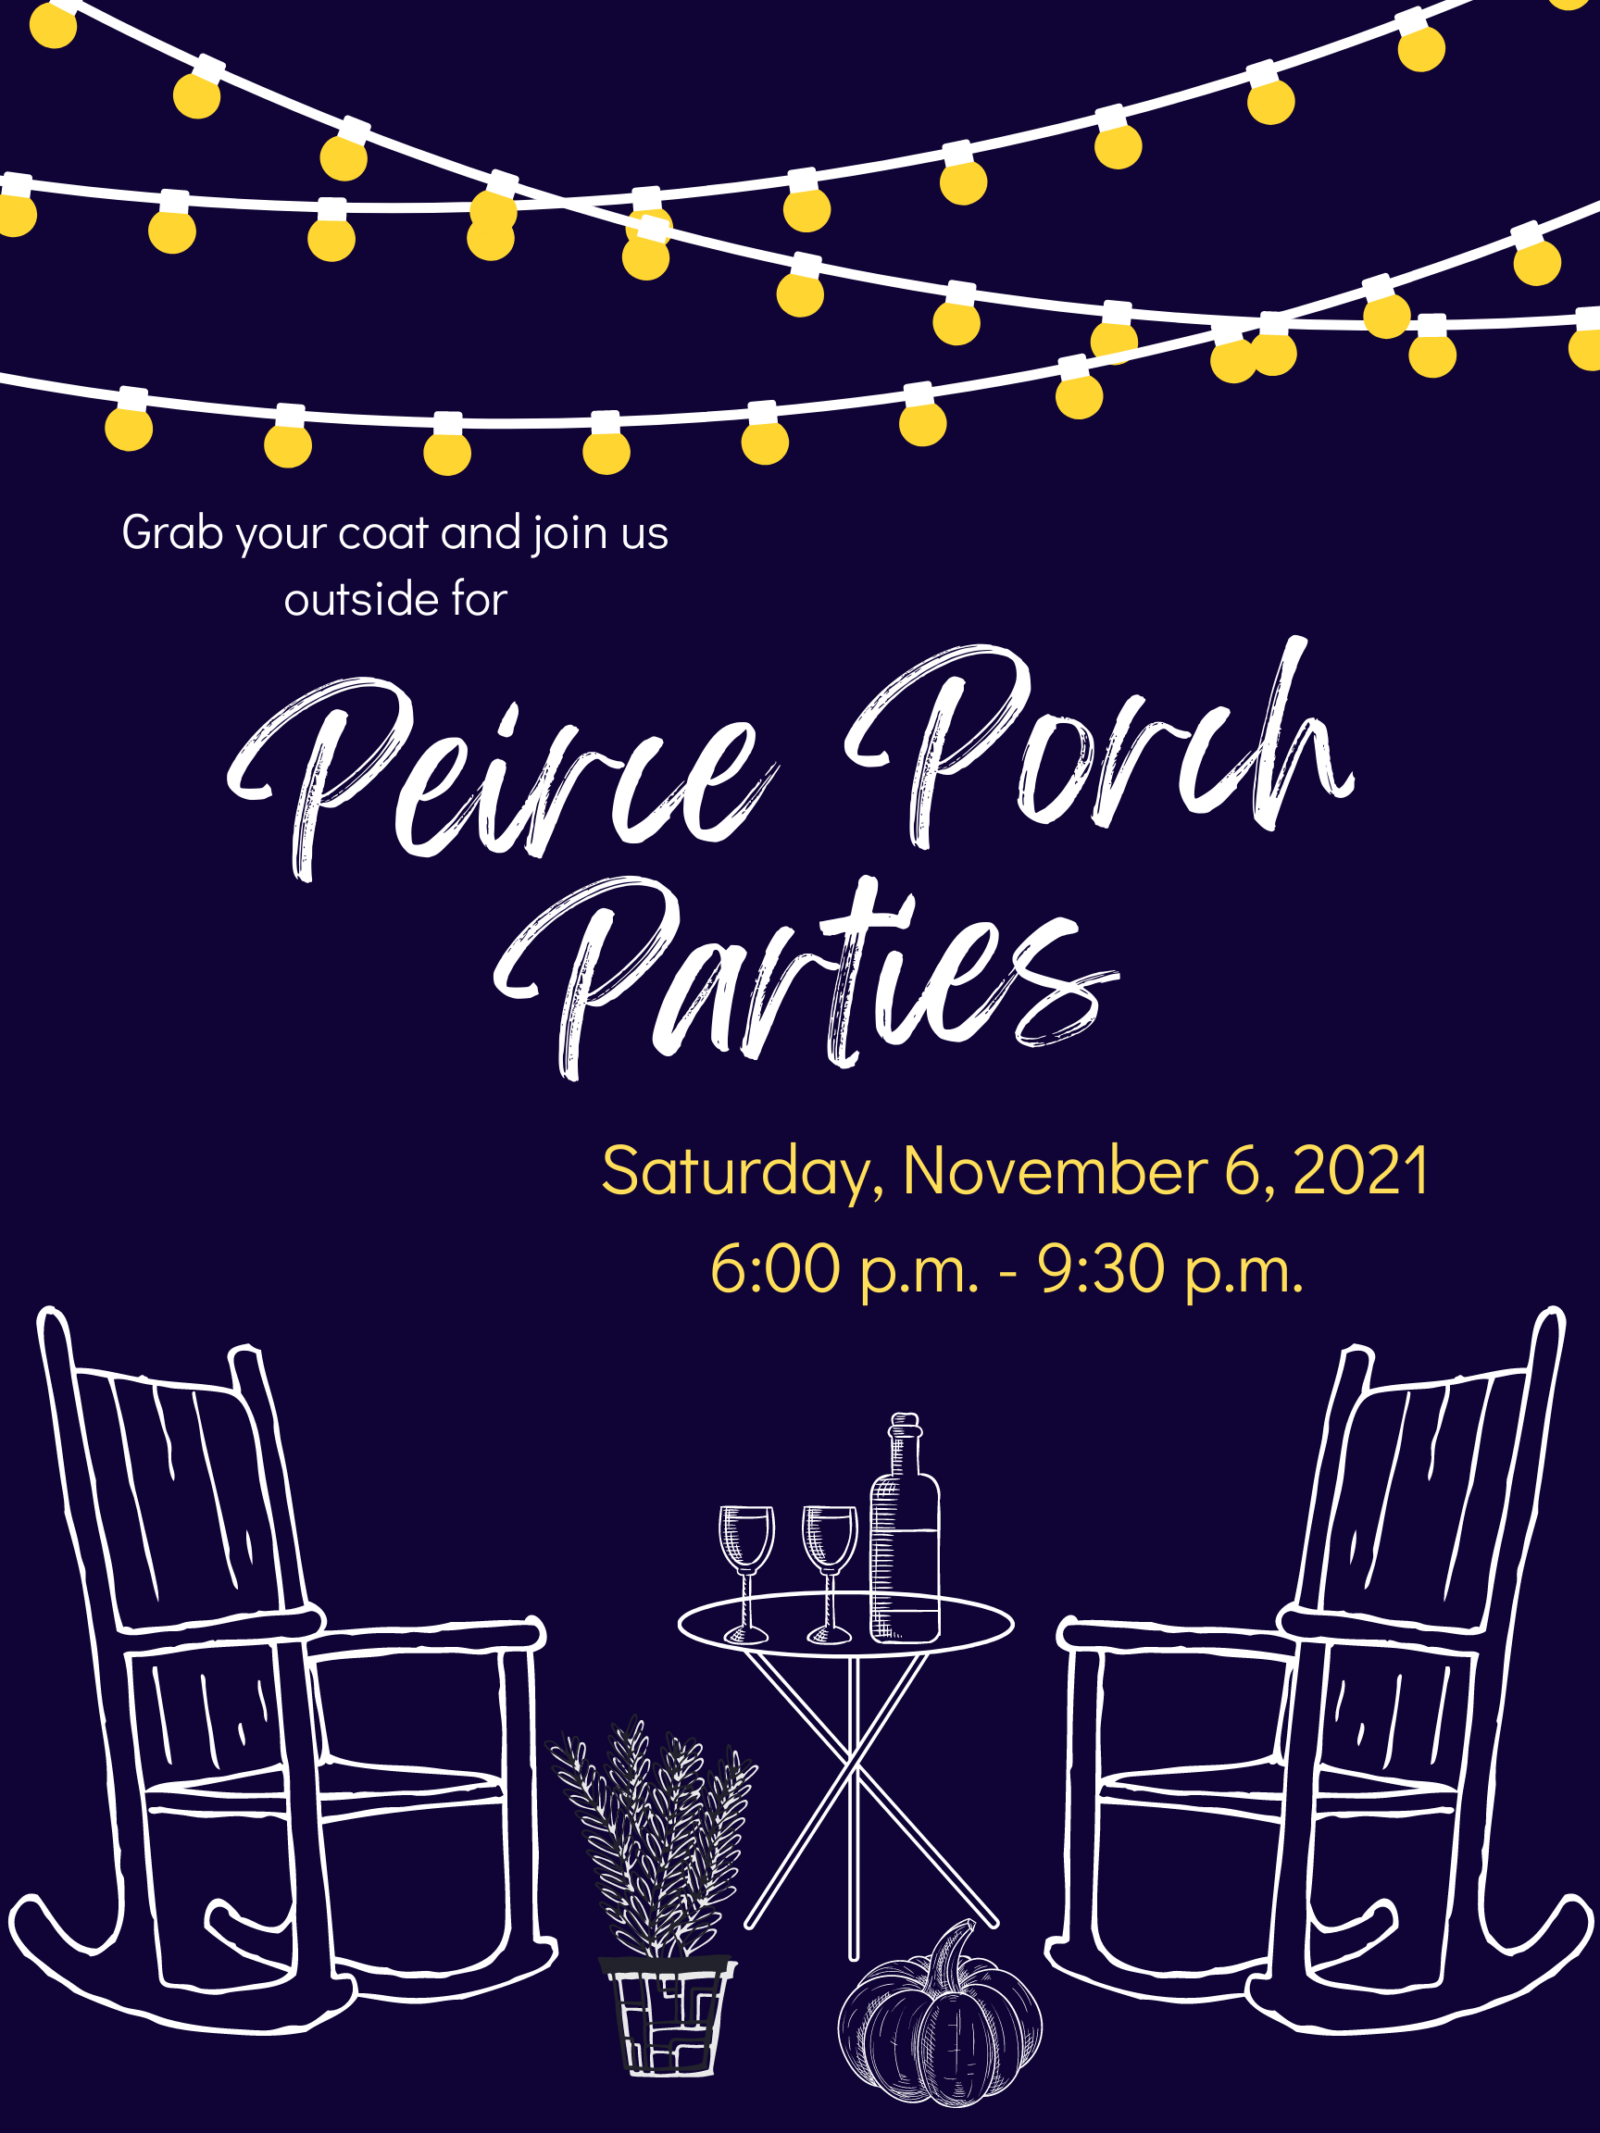 Porch Party Poster 9-22-21